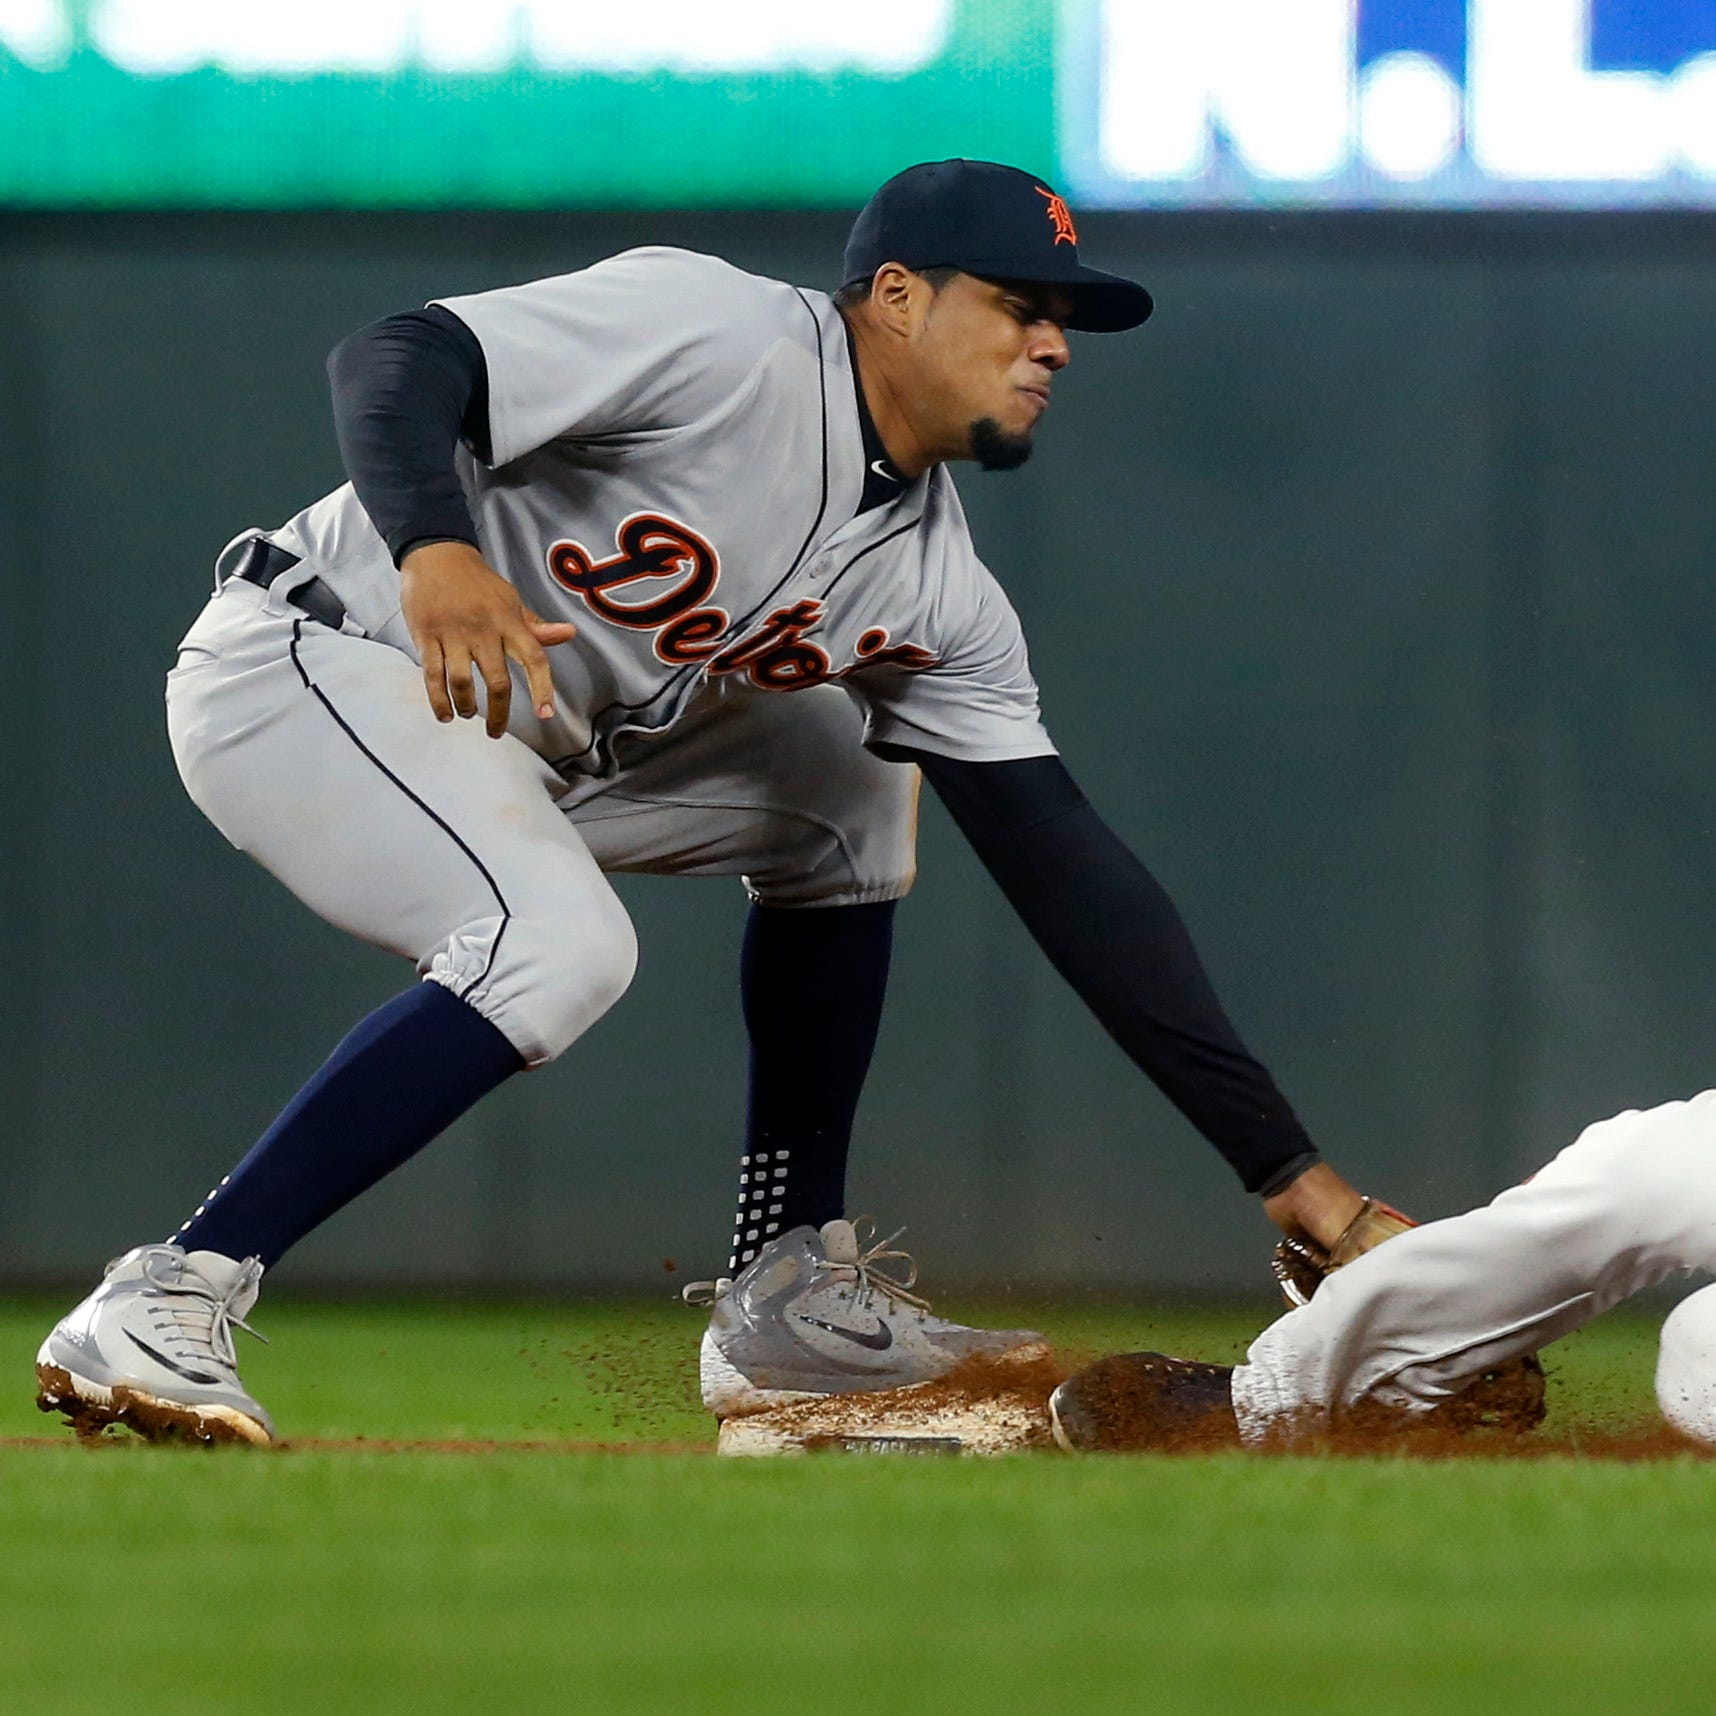 'Nervous' Castro makes first MLB start, ignites Tigers' rally